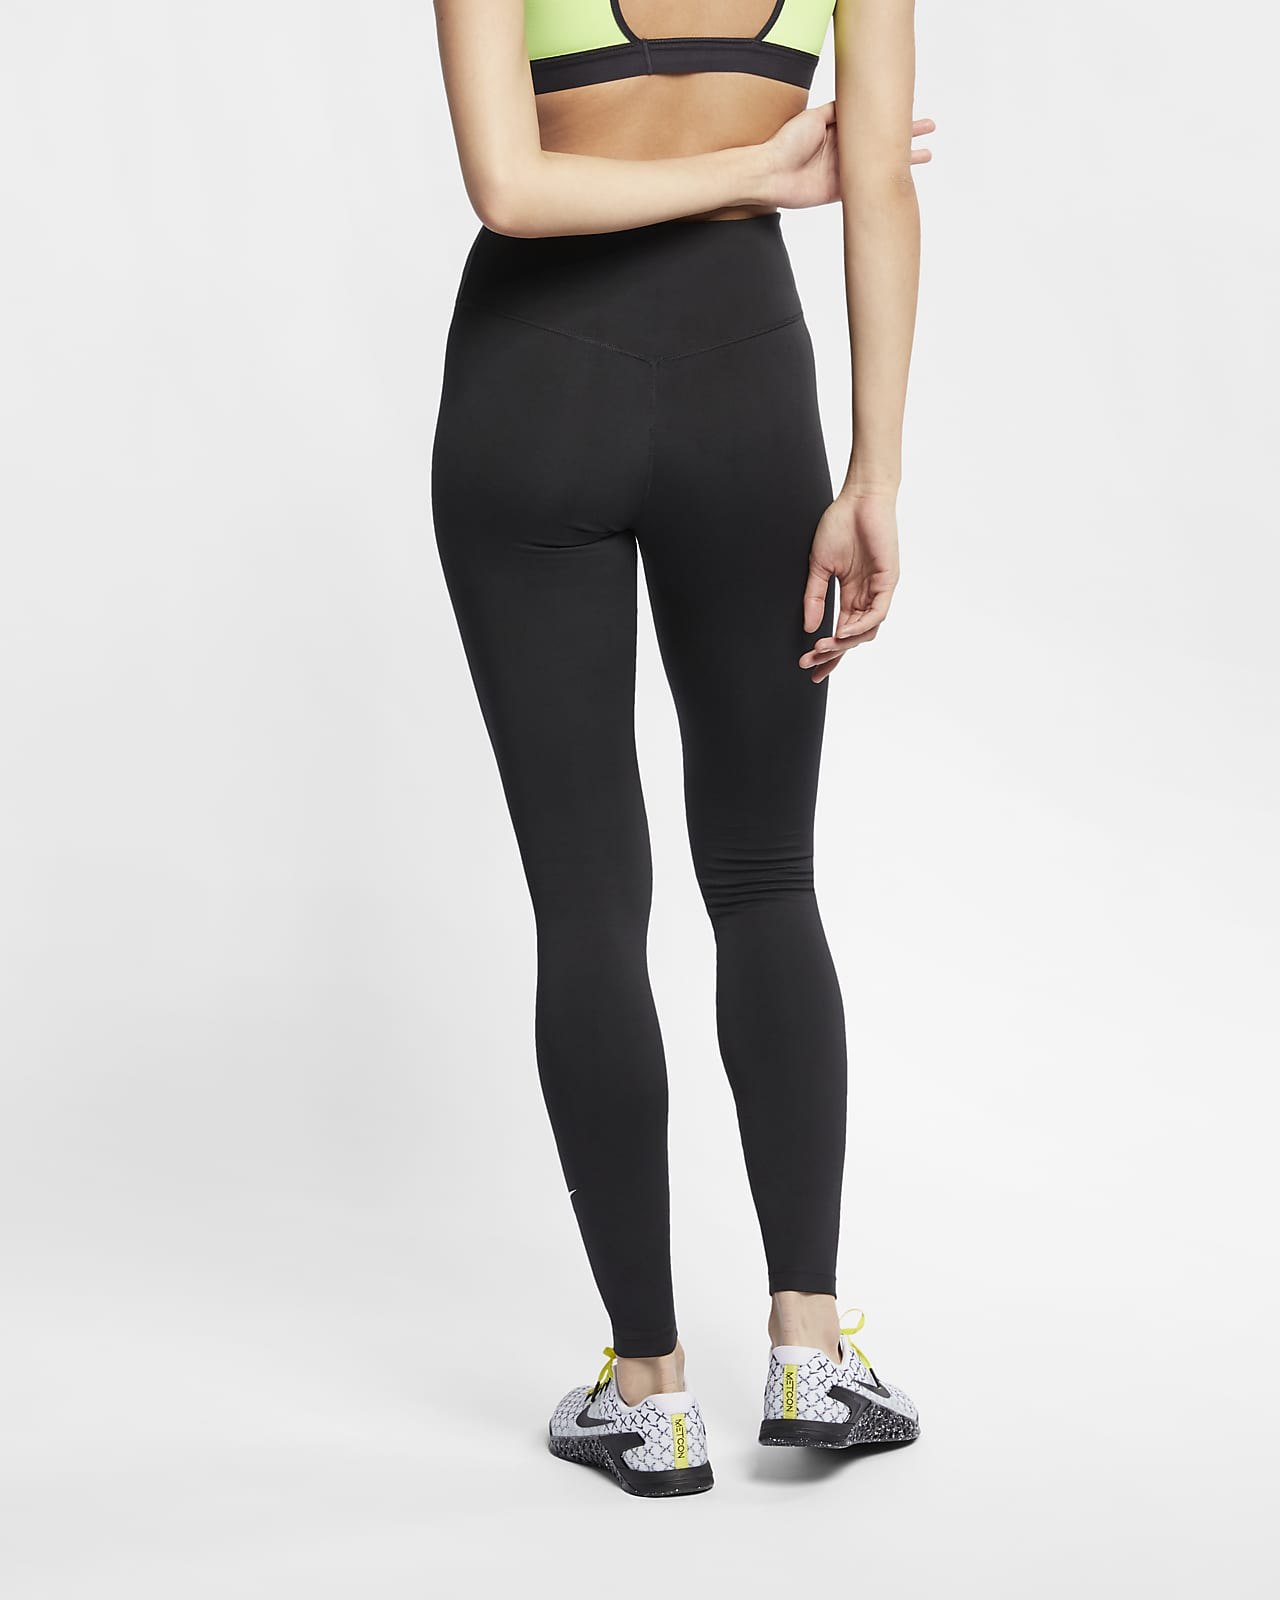 Womens nike pro intertwist leggings training high rise full length matching tops